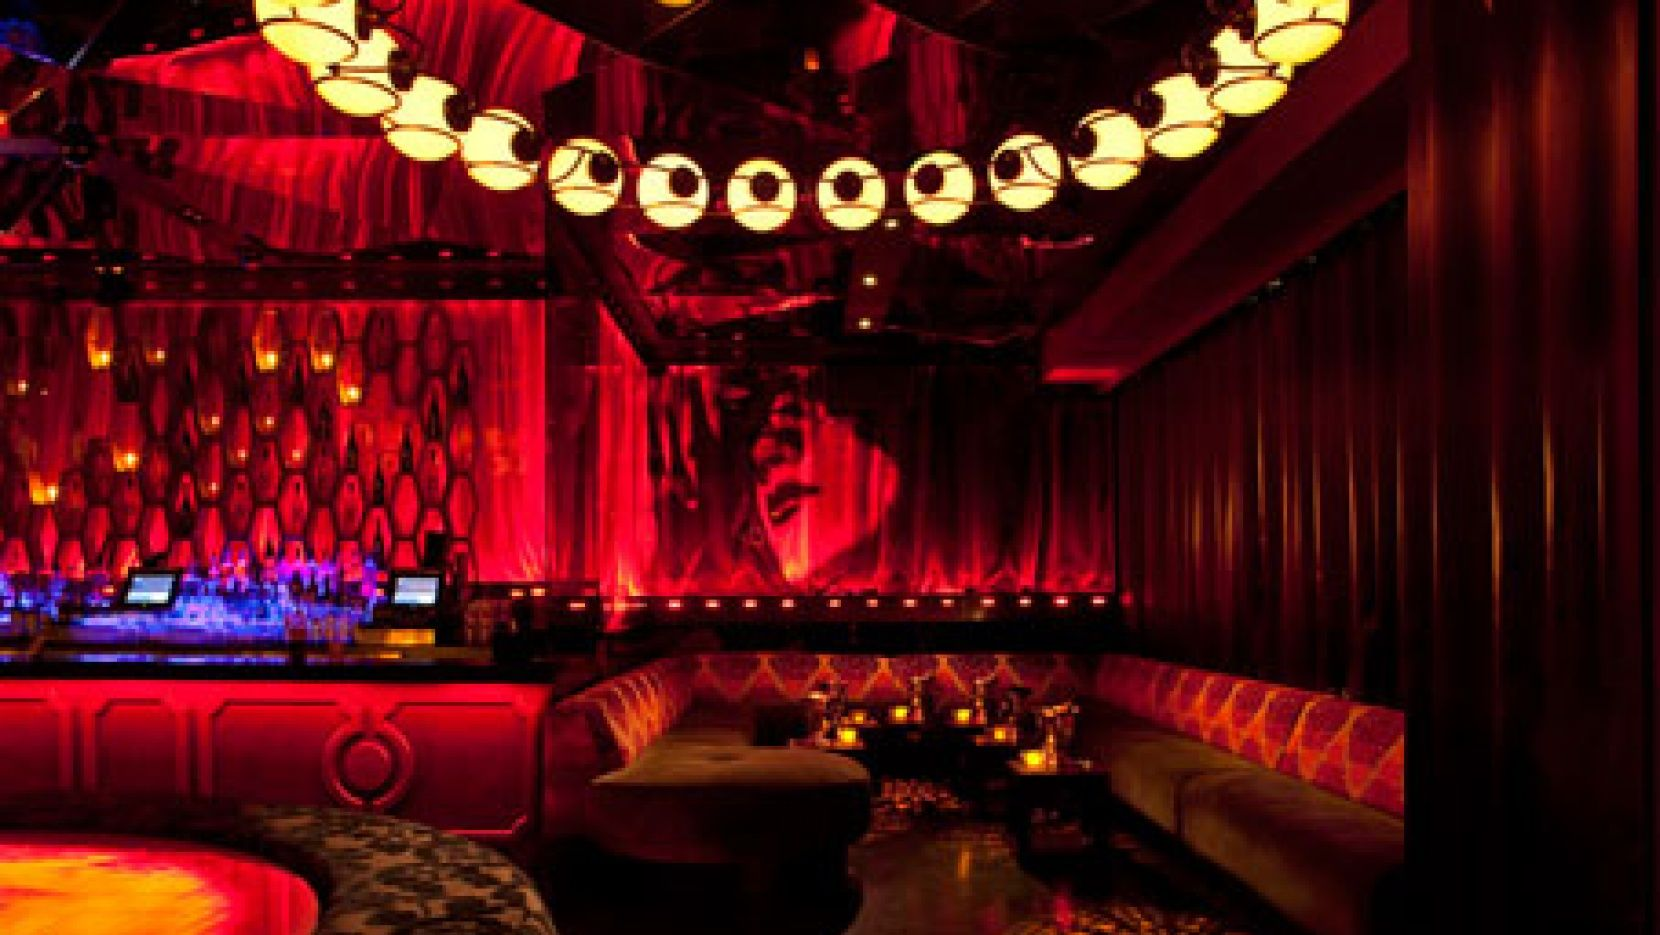 A Successful Design Concept For Night Club In Las Vegas Consists Of Artistic Colored Lighting